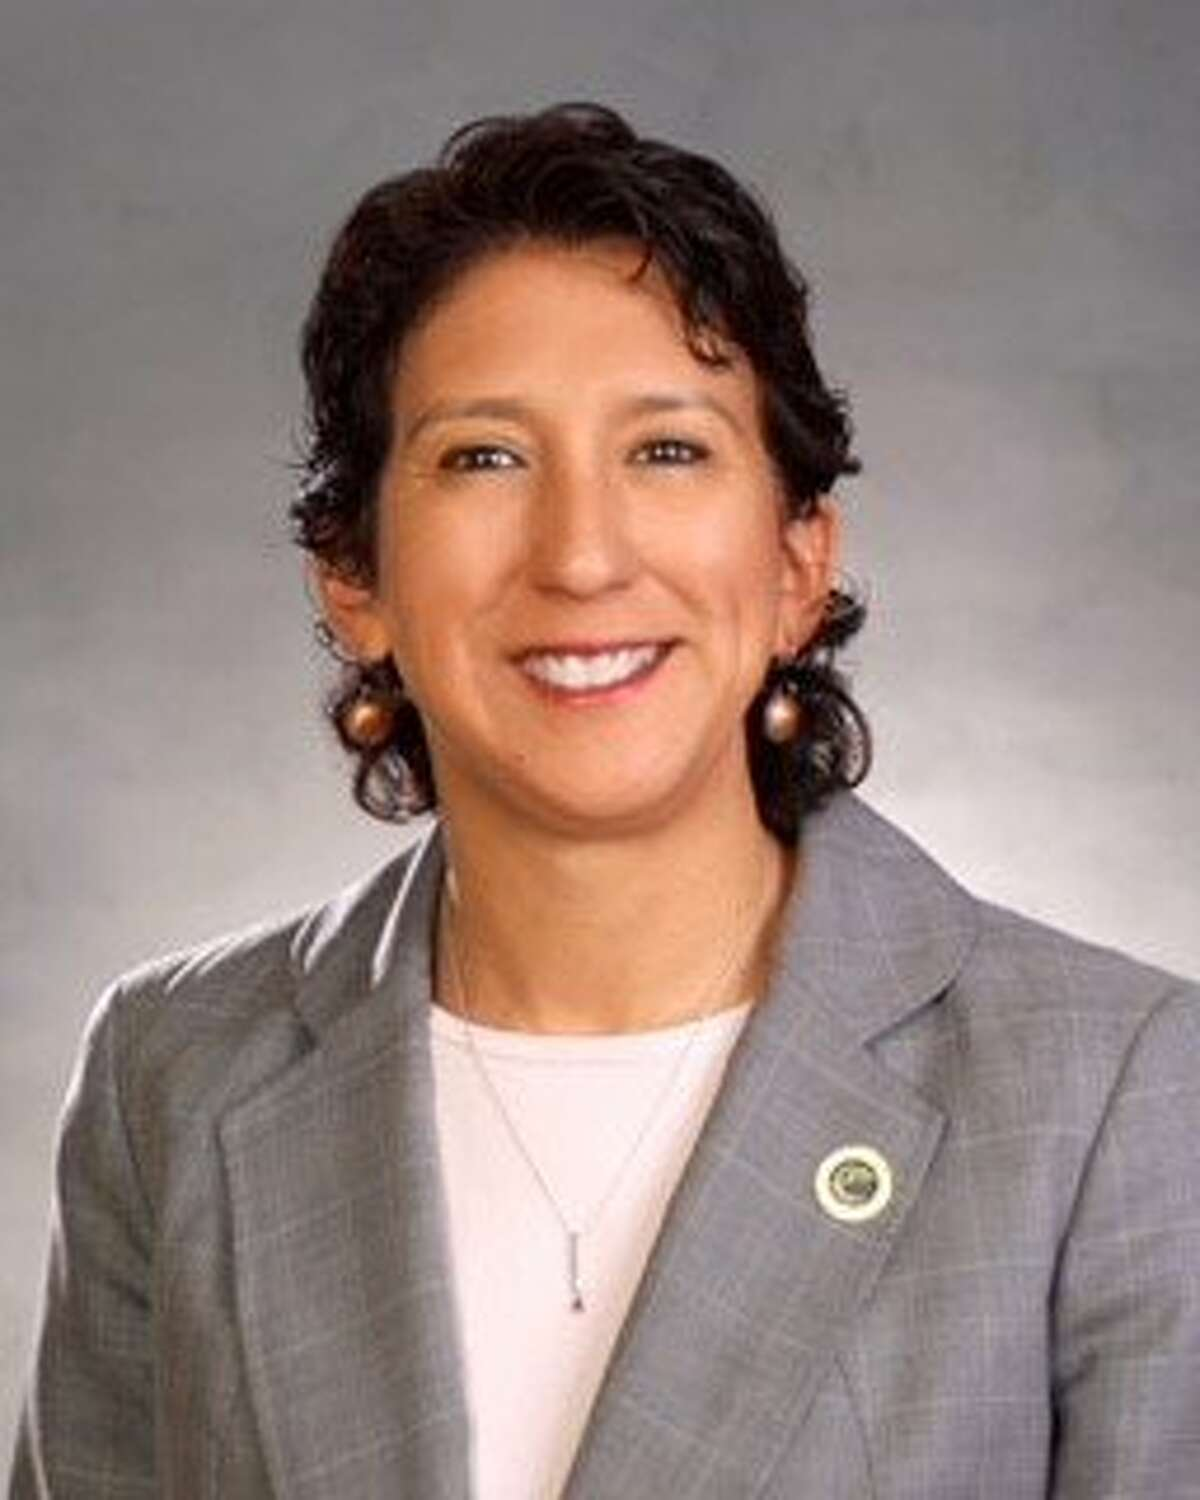 Cecilia Estolano, president of the�California Community Colleges,�has been appointed to the UC Board of Regents